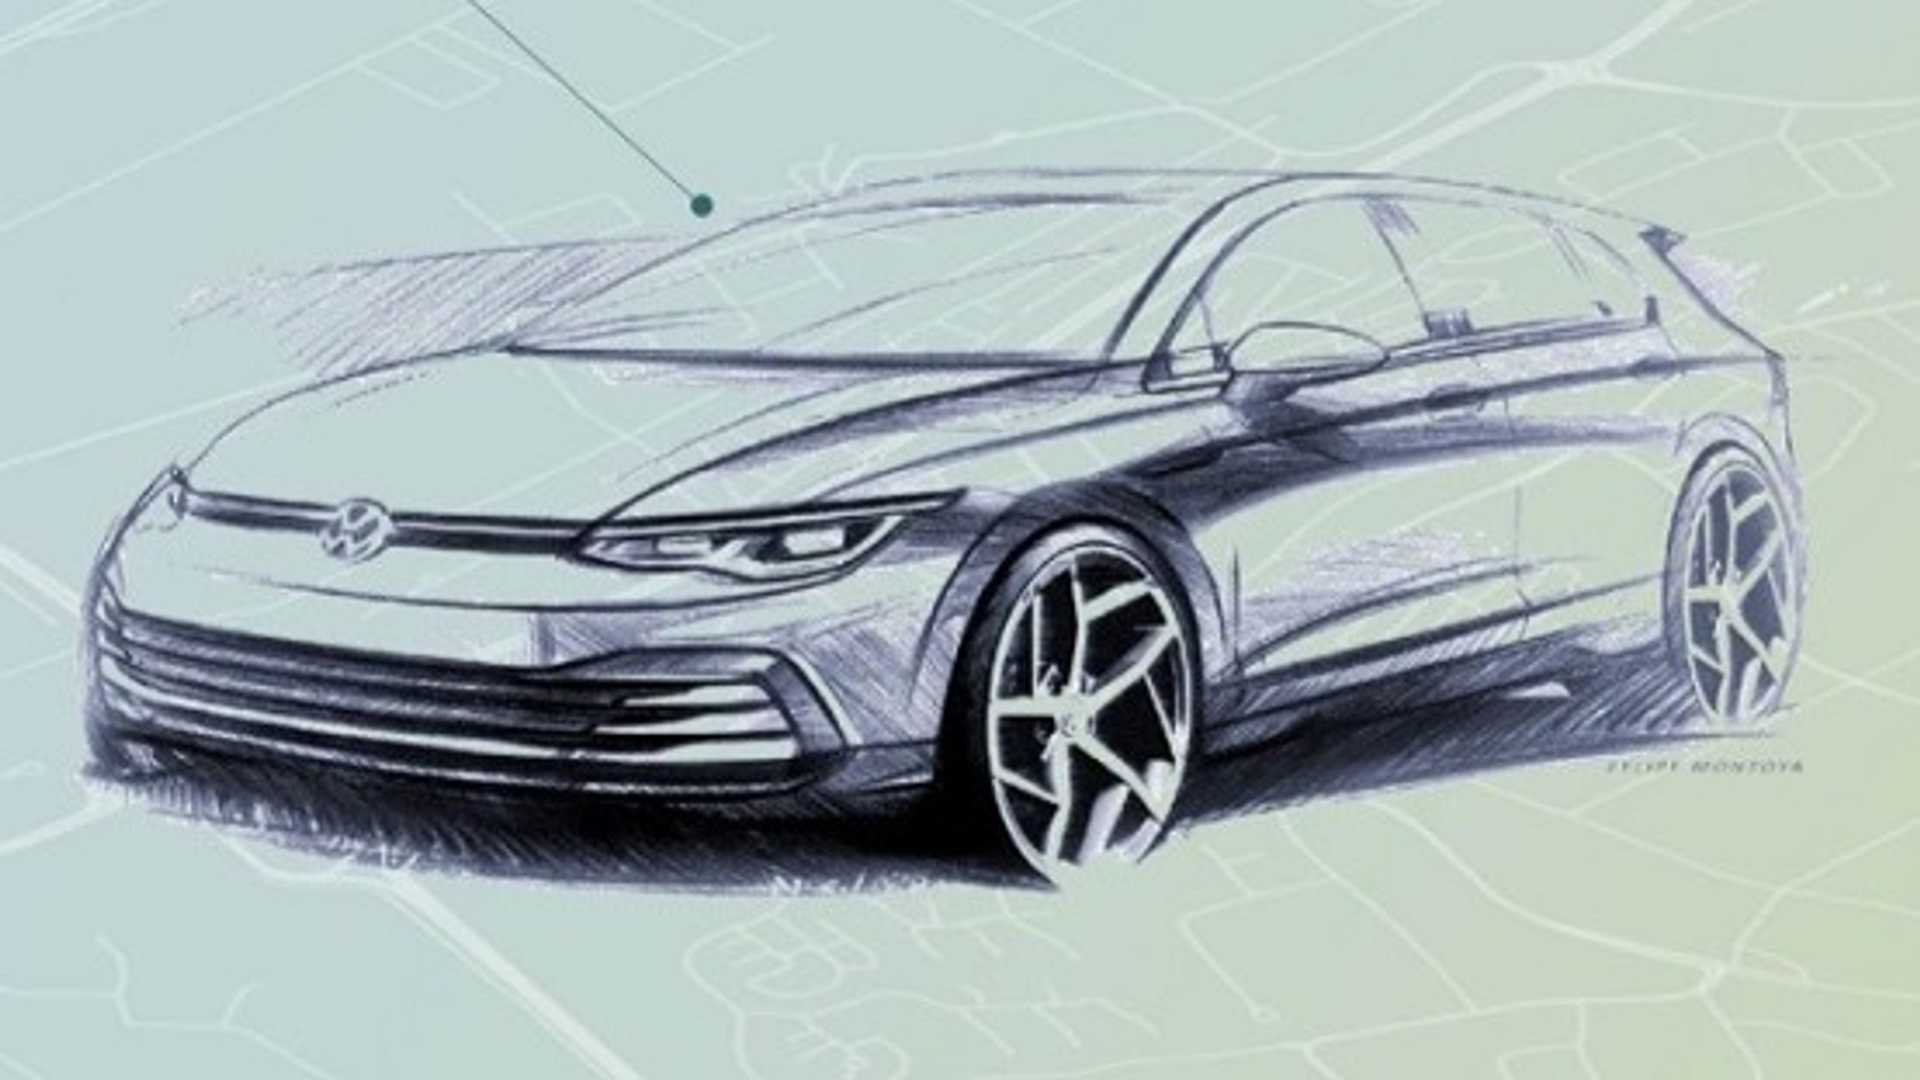 VW Golf Wagon Confirmed To Get Next Generation